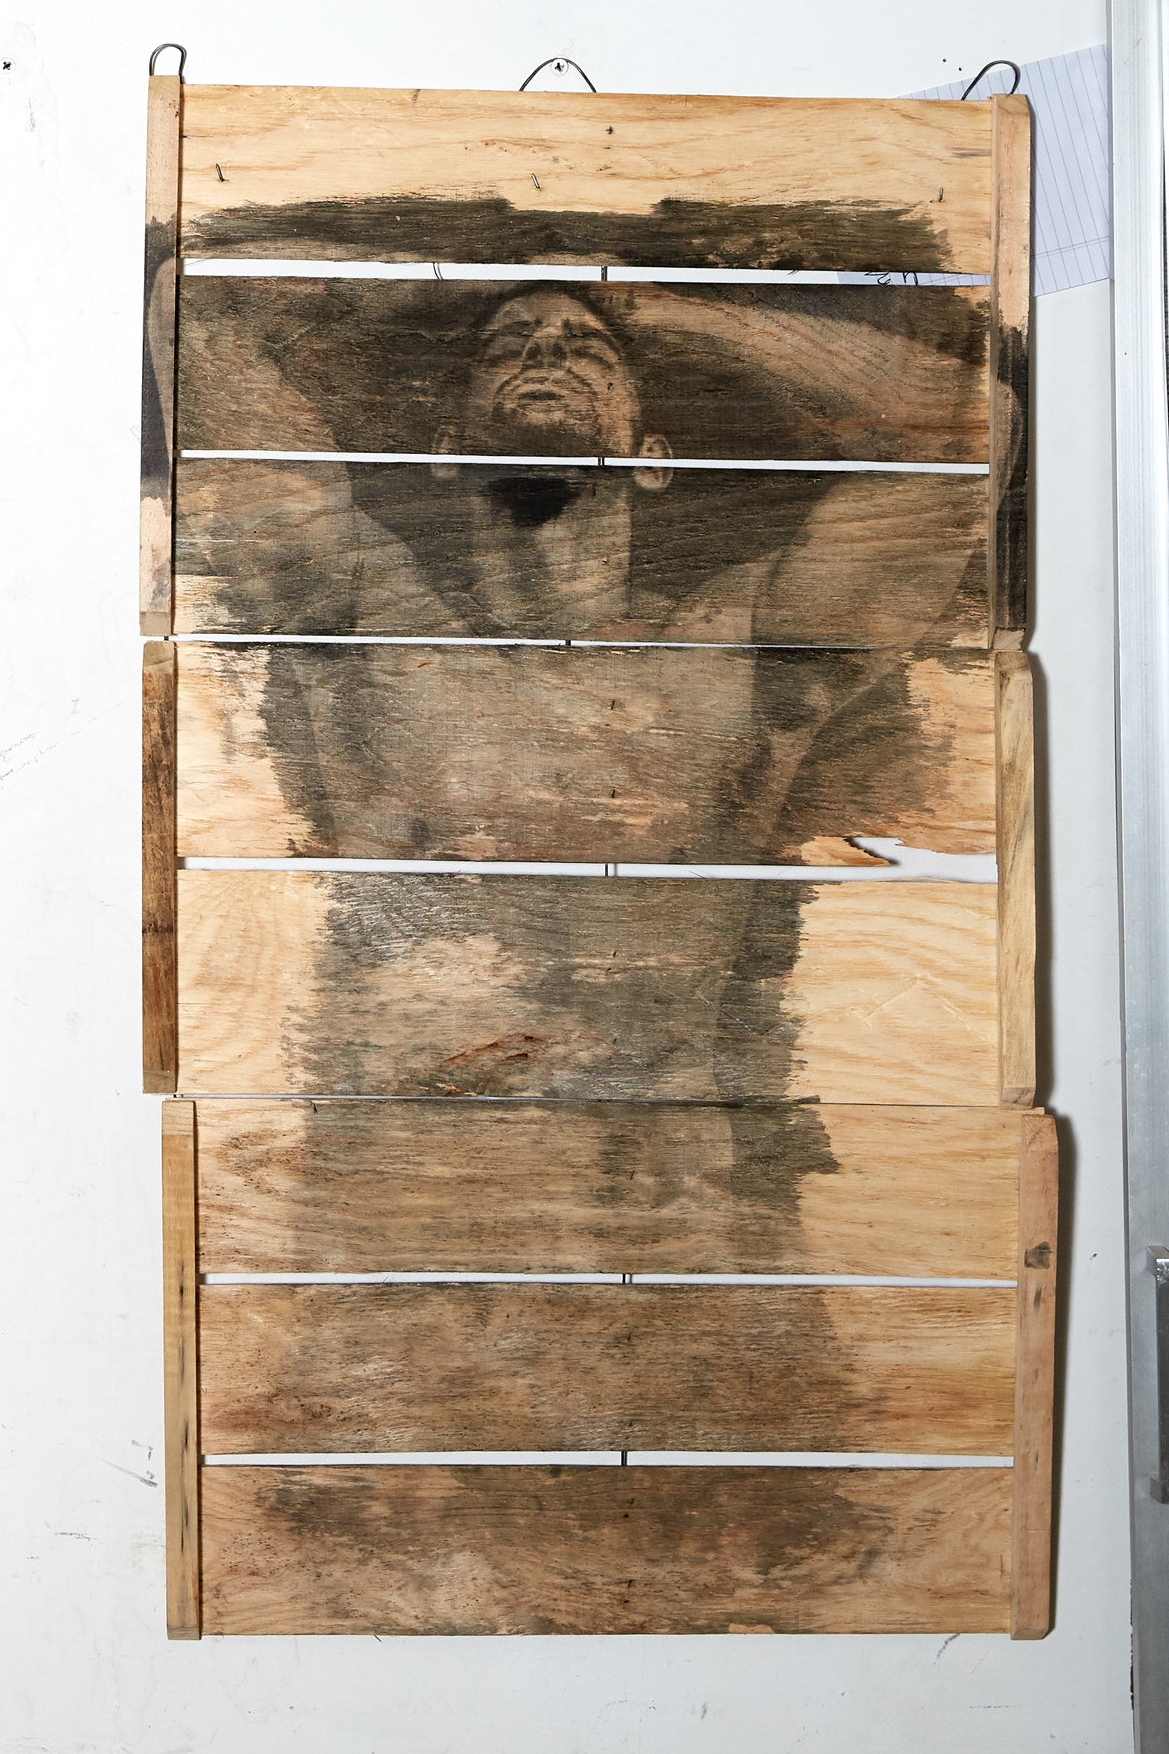 Vulnerable  3' long  Single Edition (#1 of 1)  Prompts gay thought in 9/10.  Liquid Emulsion Painted on Wood Slats  Ingredients: Photo (One Widow x frankenstudio) Print (Expired Black Magic, Ethenol, Proprietary Chemical Blend & Process, produce transport box)